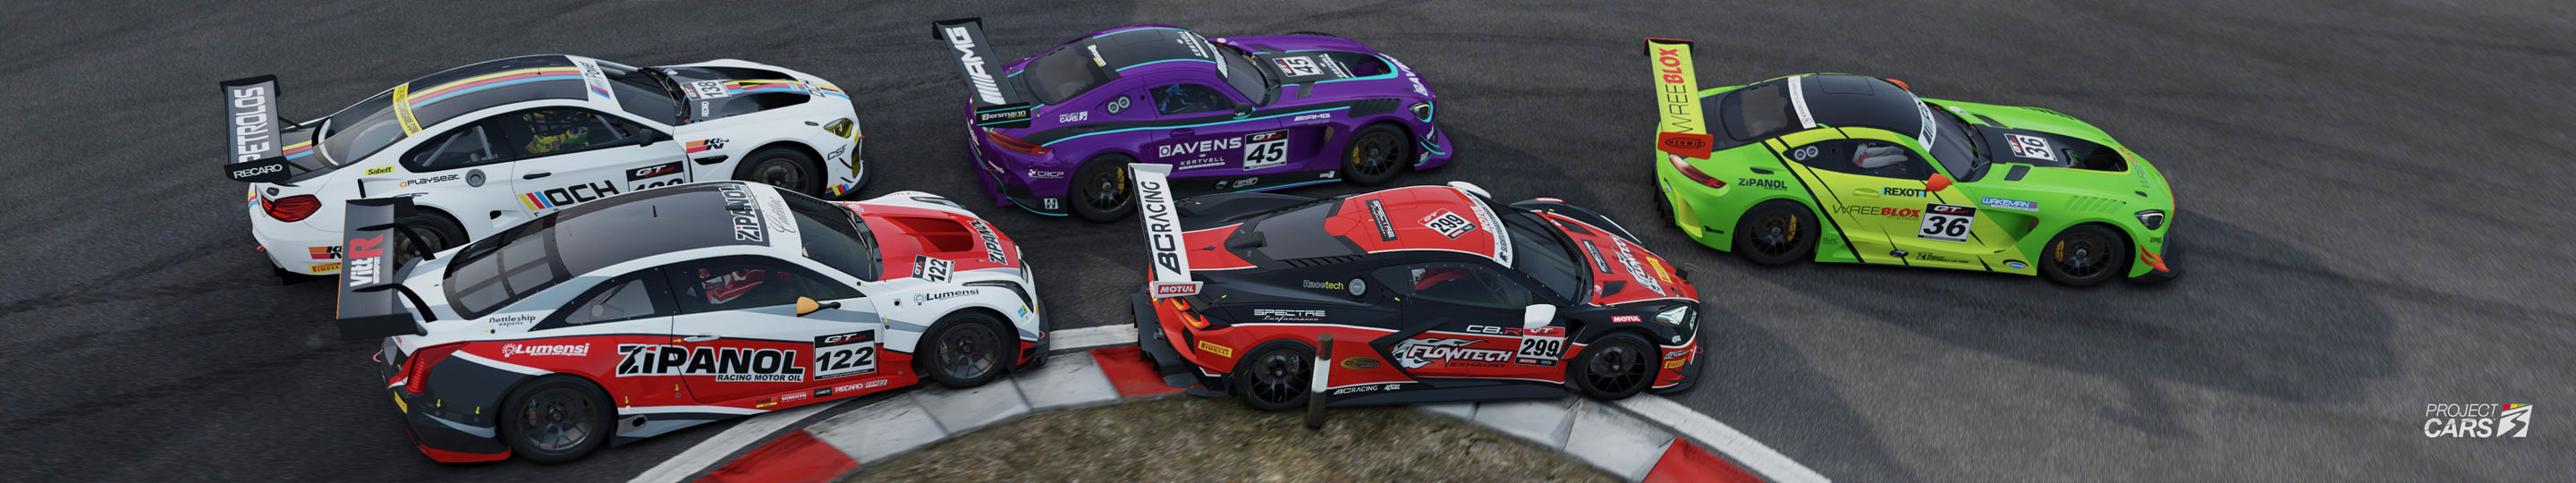 5 PROJECT CARS 3 GT3 at NORDSCHLEIFE copy.jpg